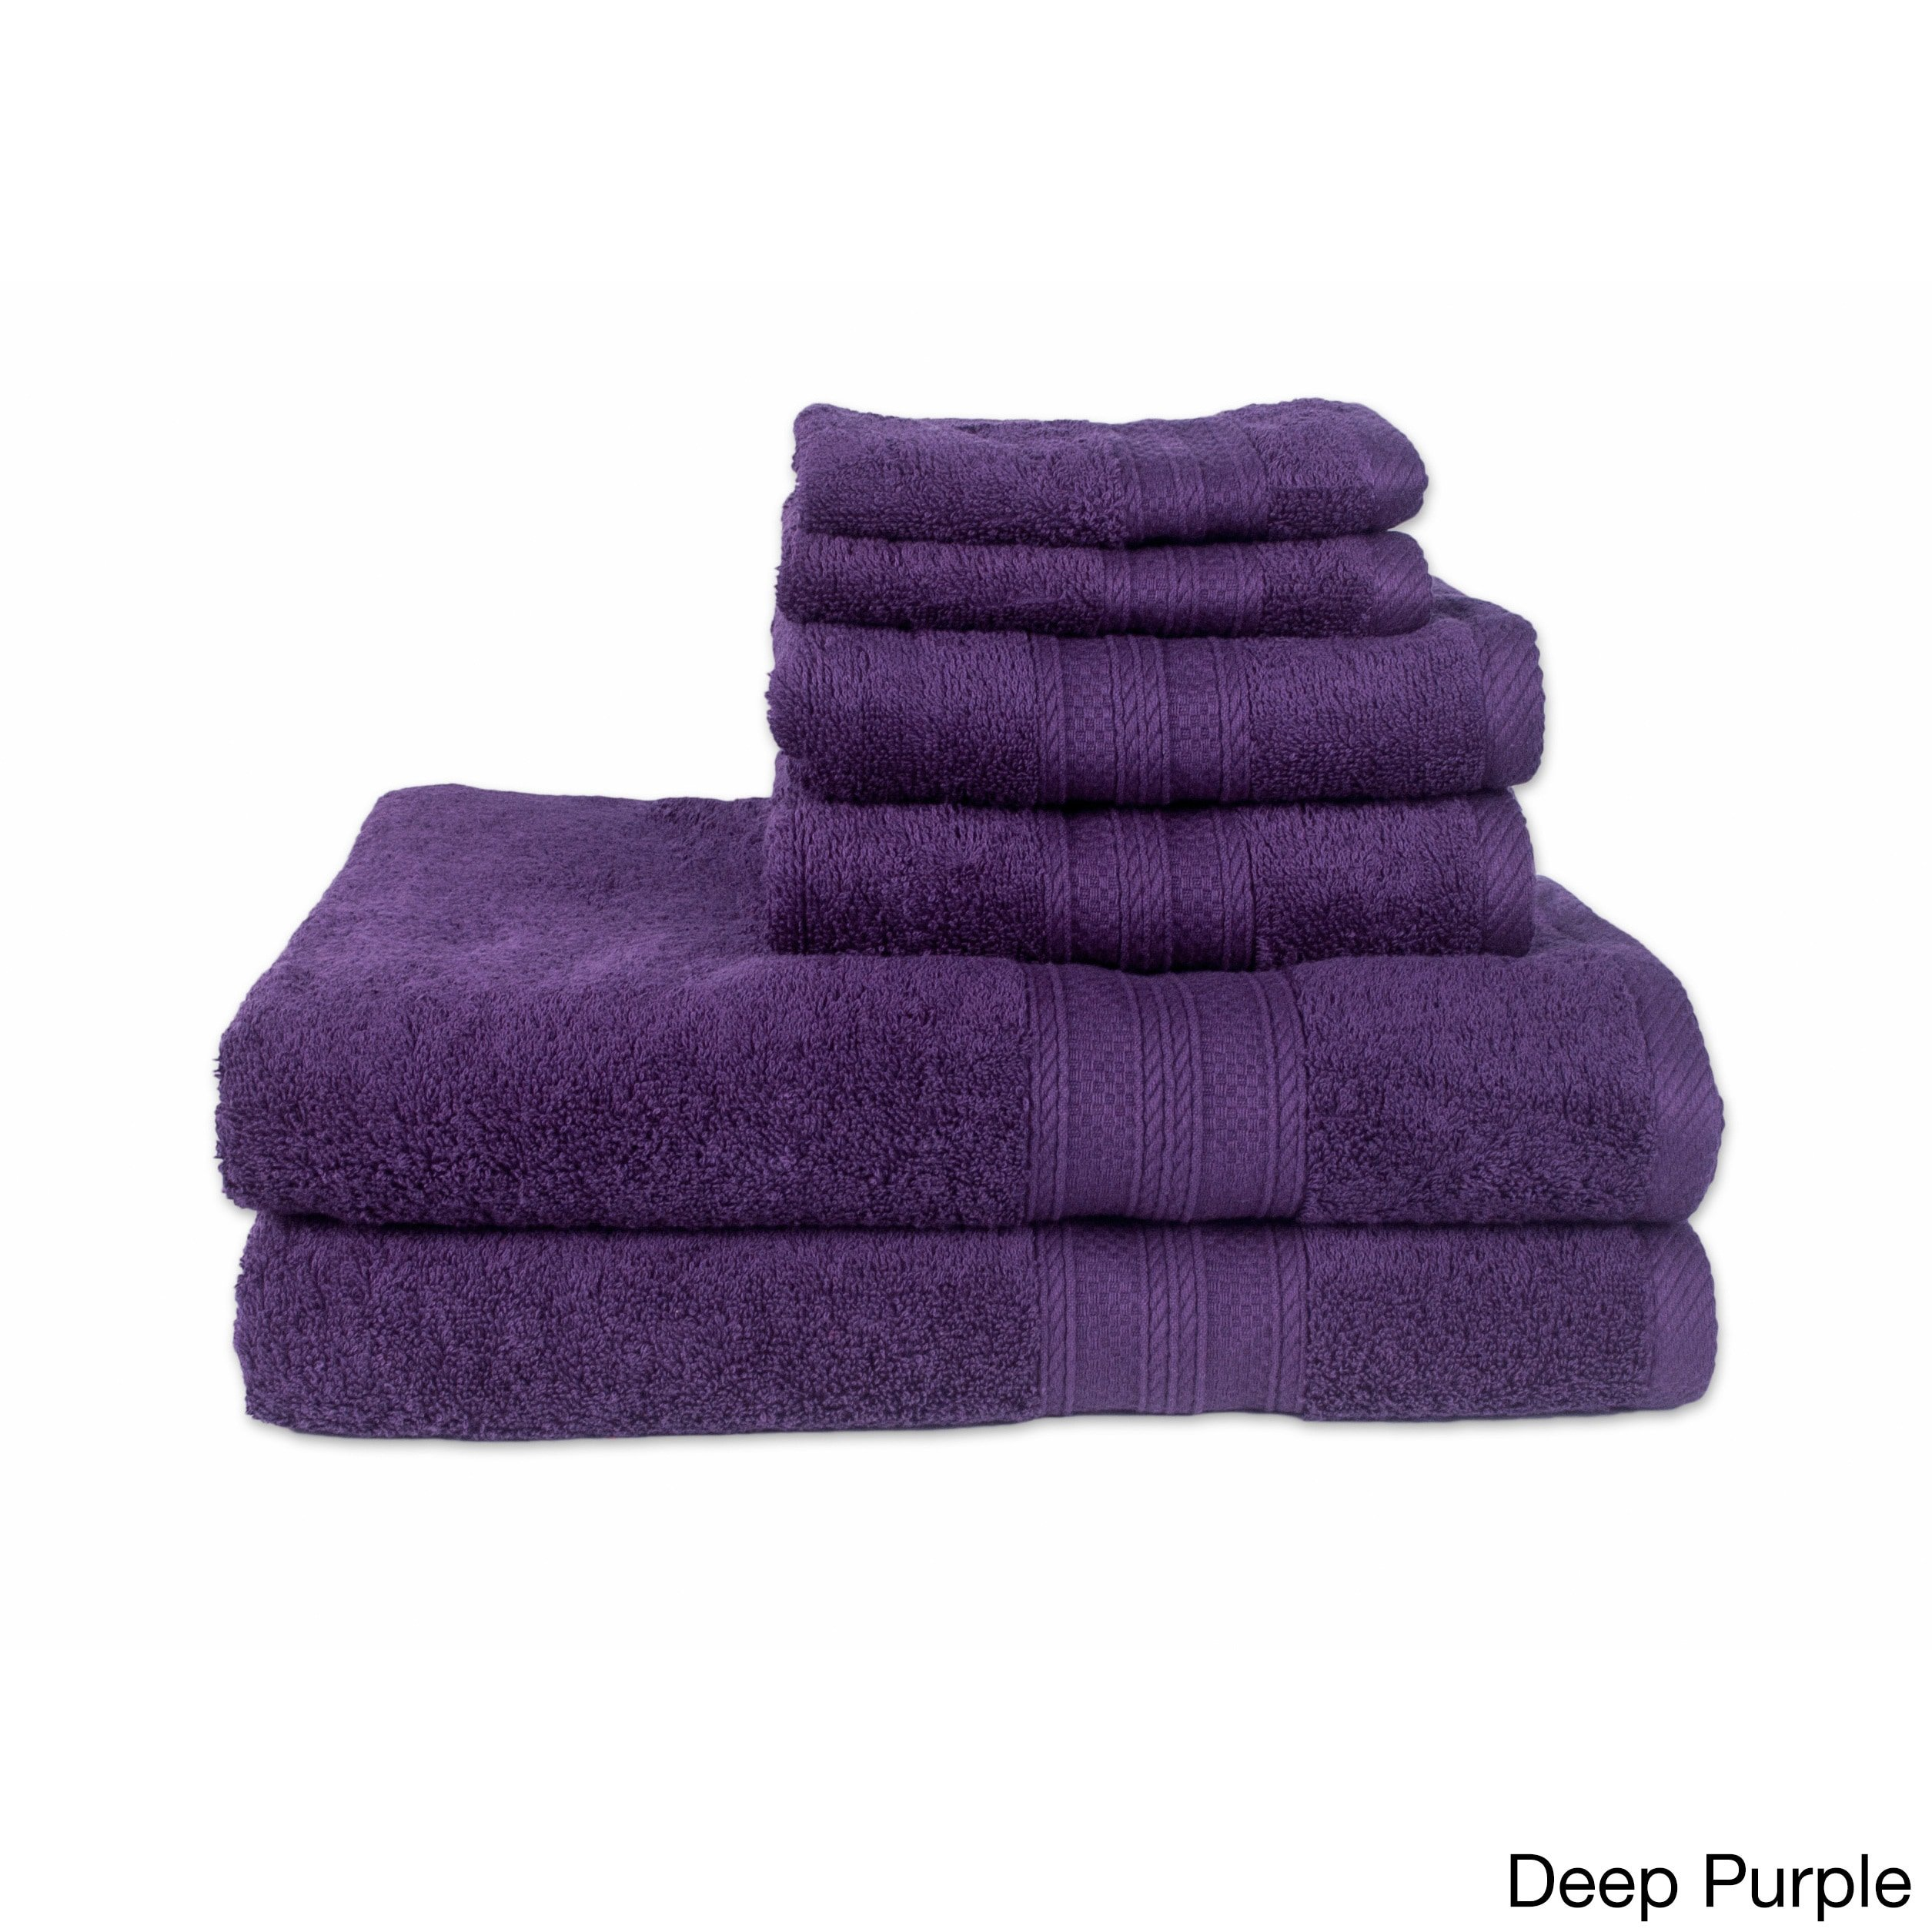 Regal Textiles Driftwood Classique 6-Piece Towel Set (2-Bath, 2-Hand, 2-Wash) Deep Purple